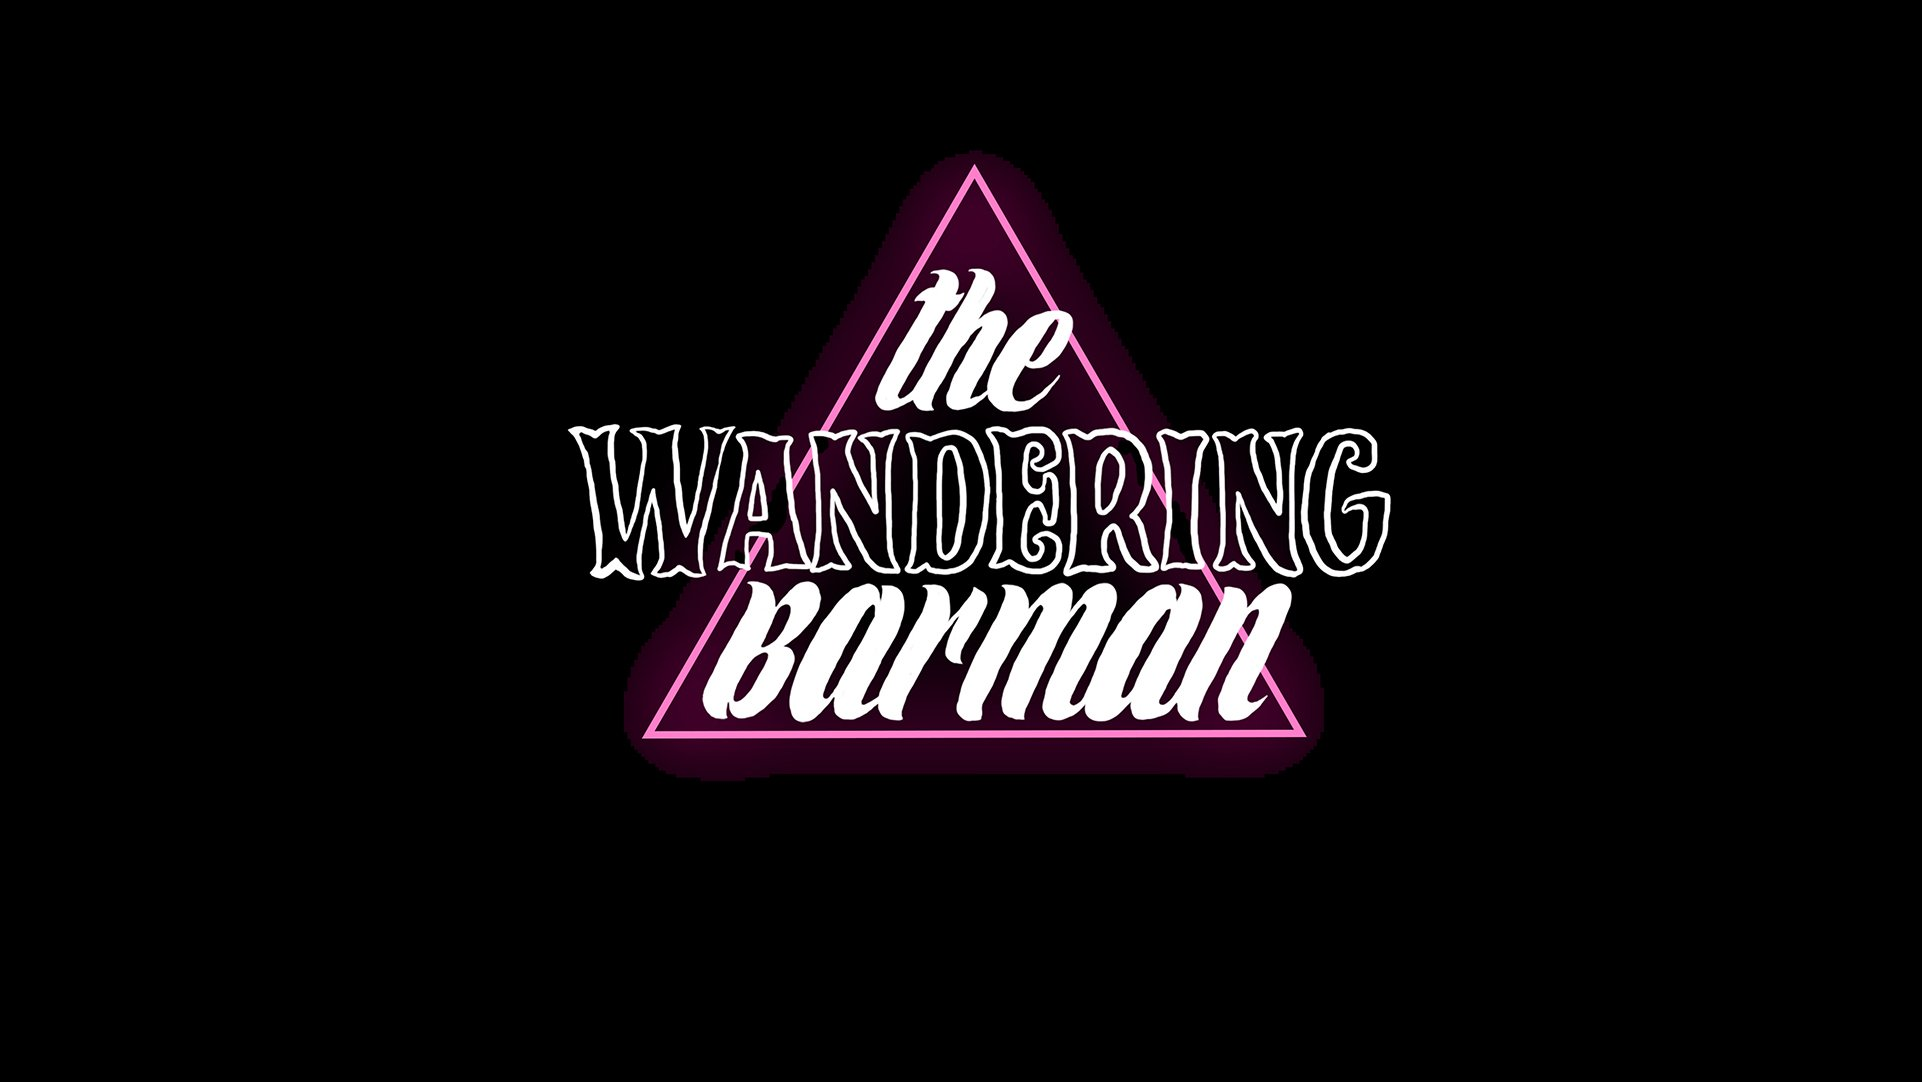 The Wandering Barman